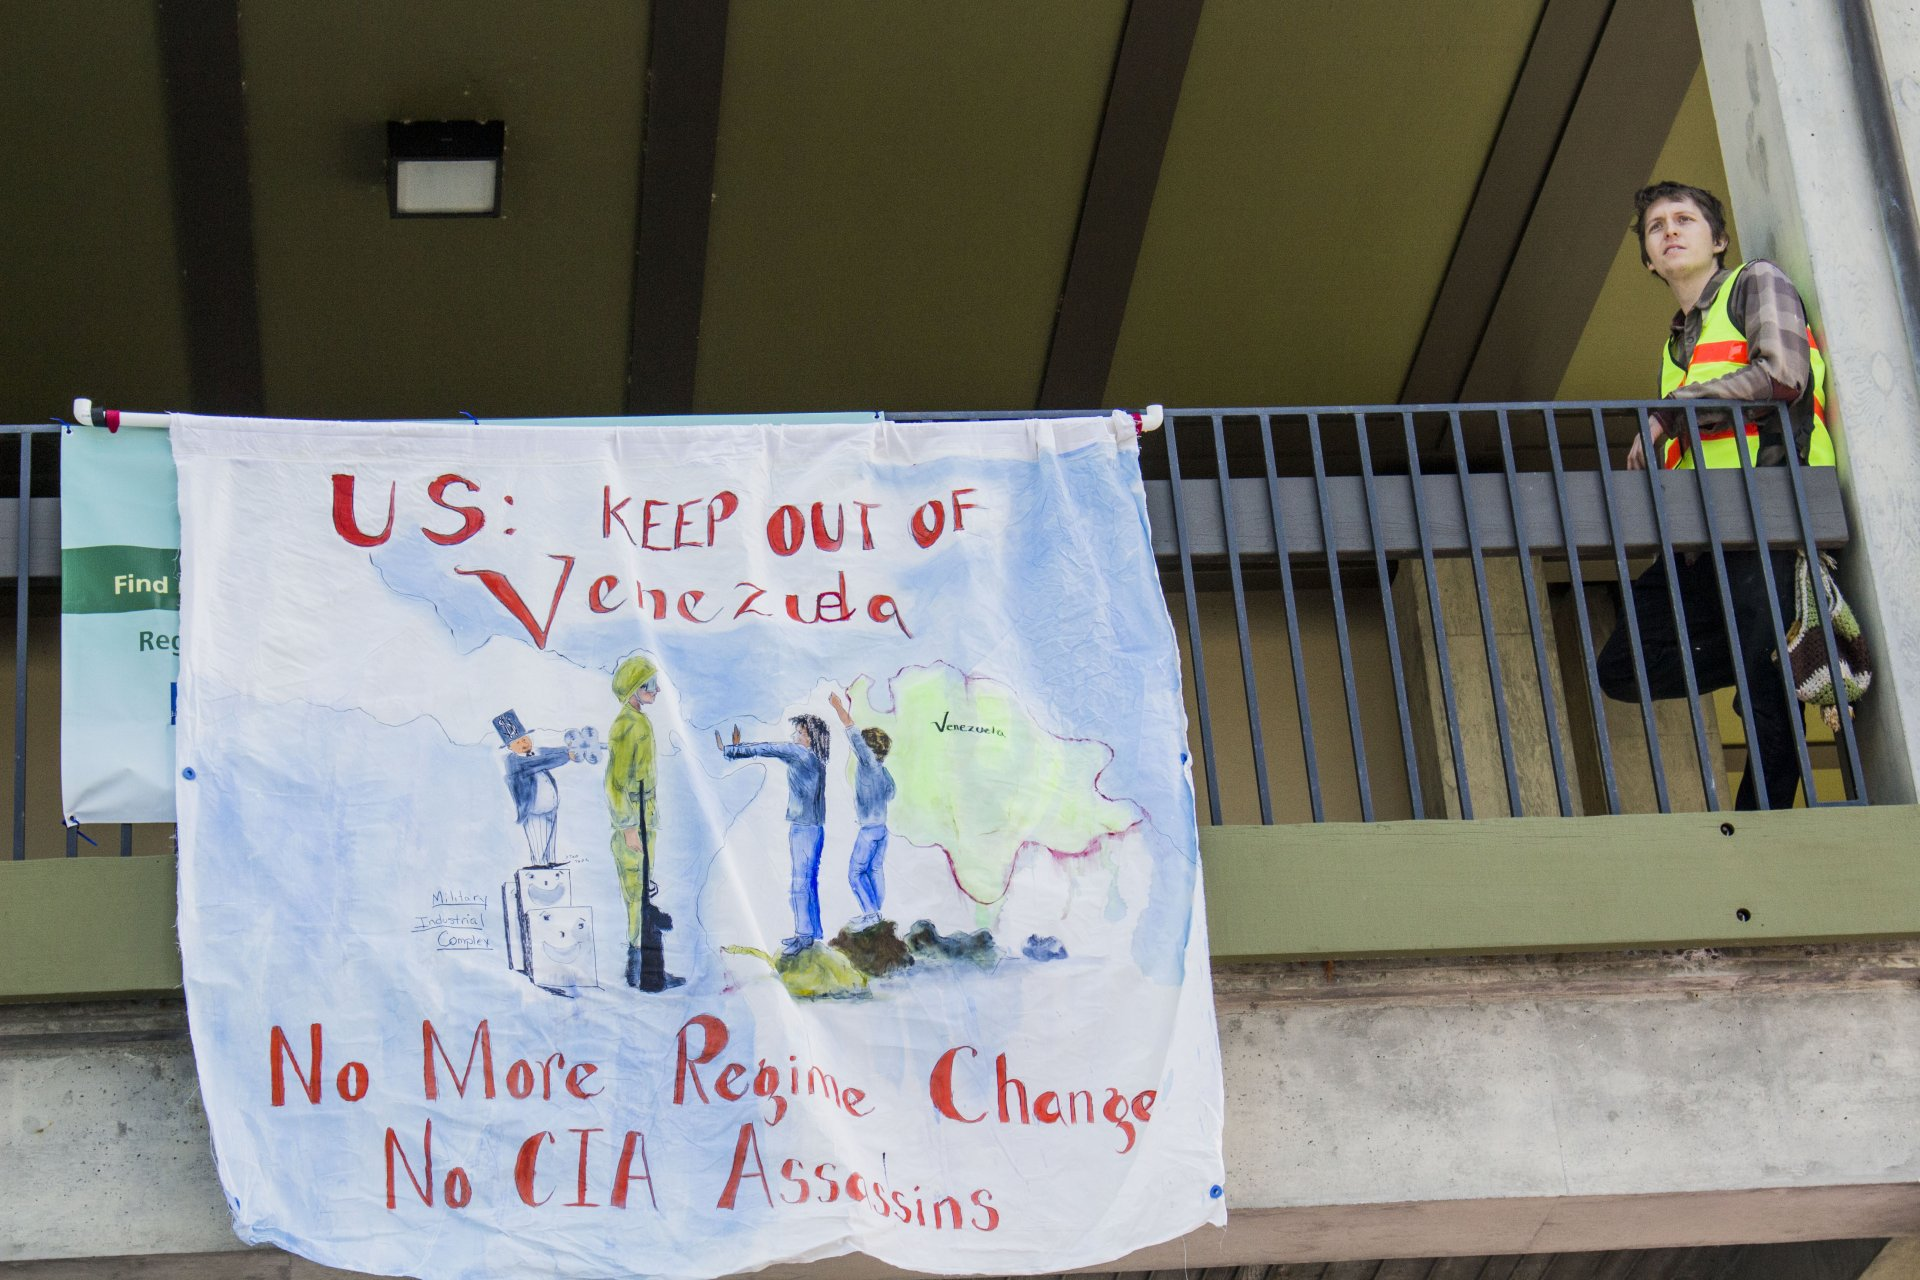 A handmade sign opposing American invovlement in Venezuela  was hung above the clubs and activities fair at HSU on February 6th 2019. By T.William Wallin